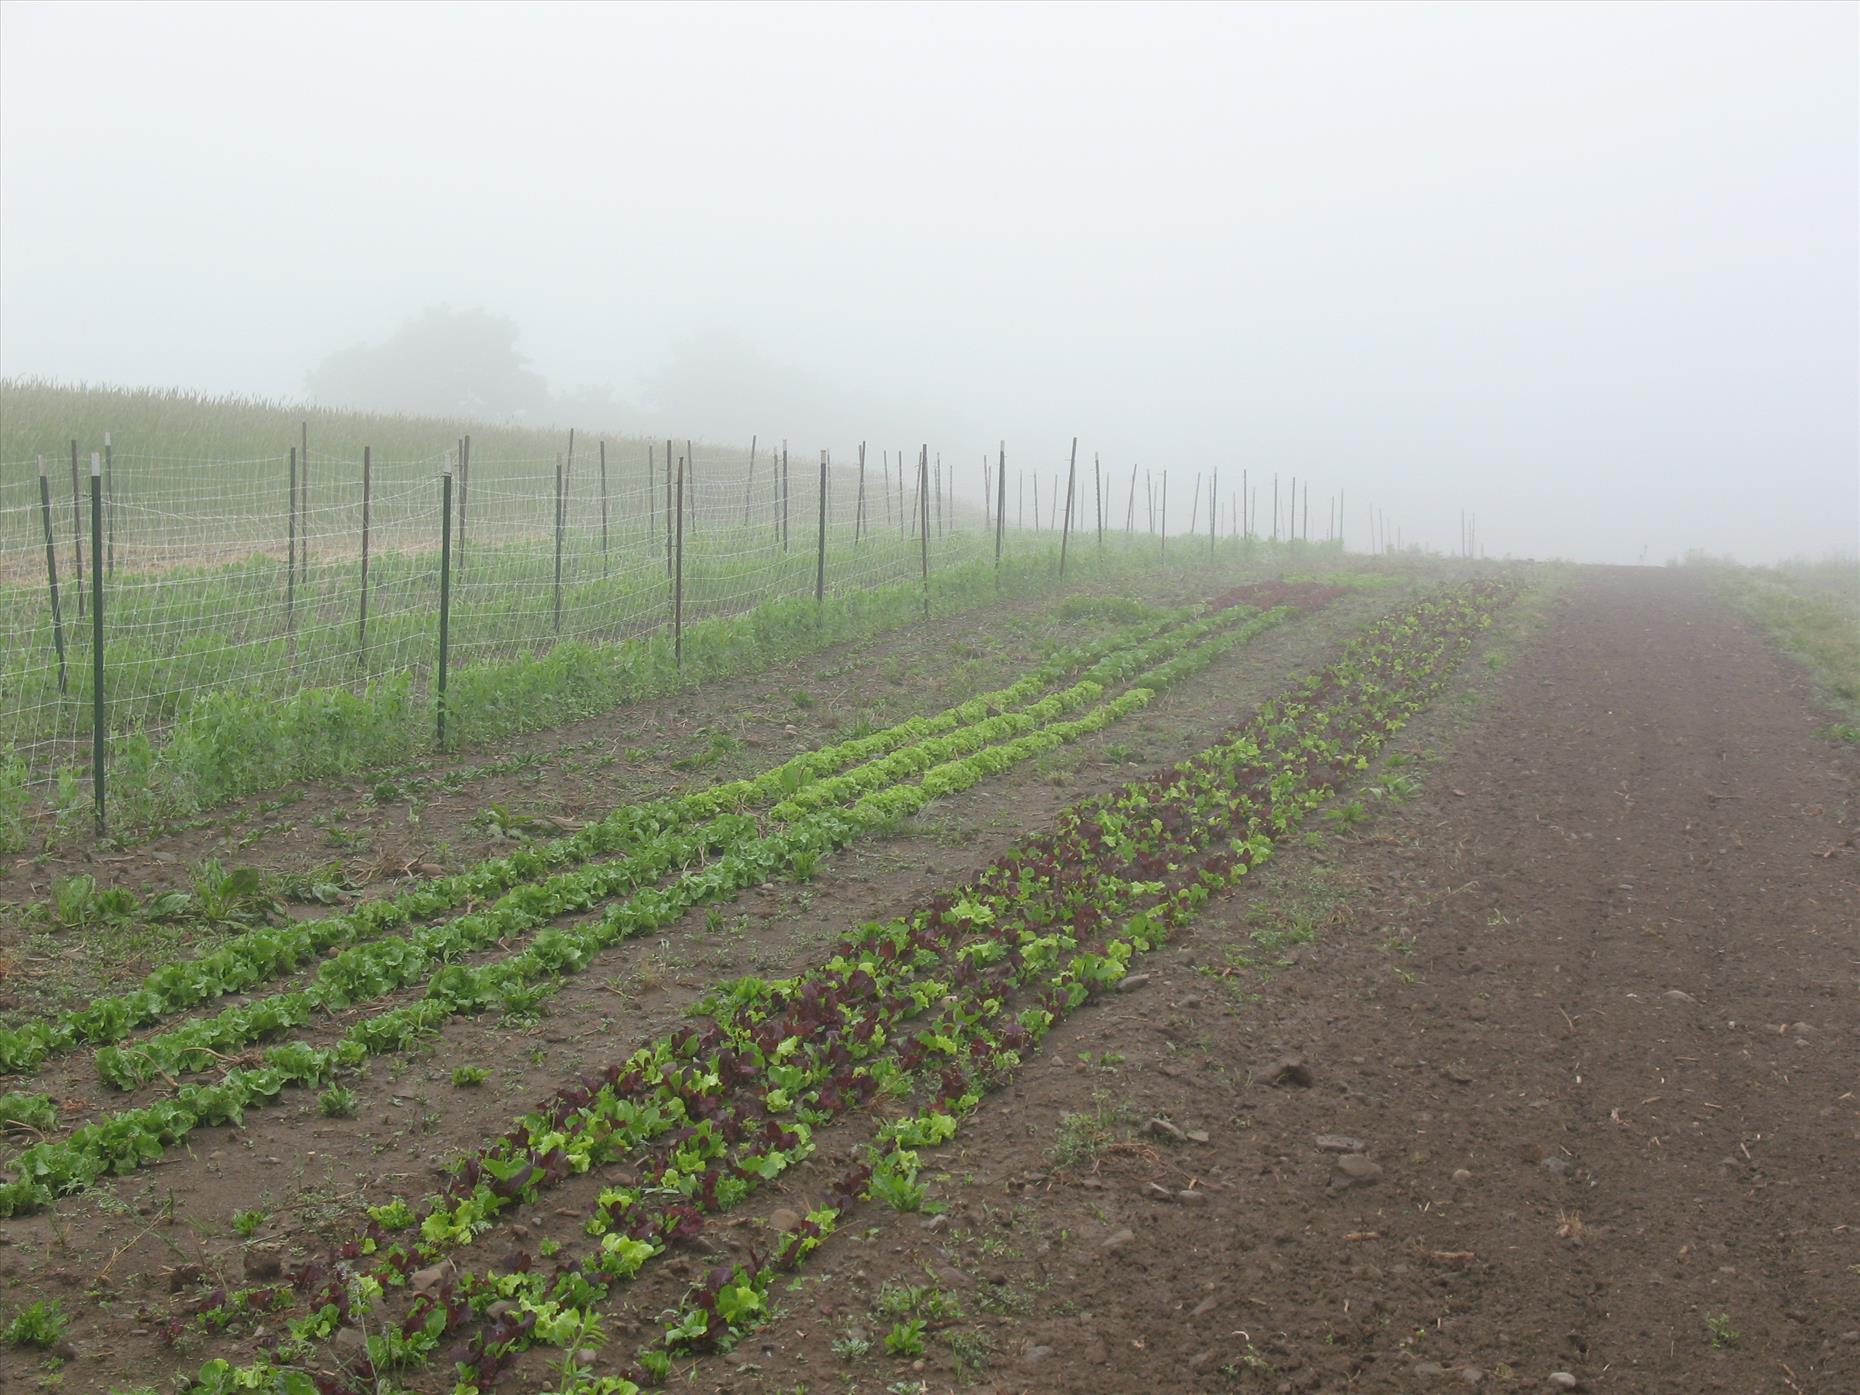 Peas, lettuce, and spinach in the mist!